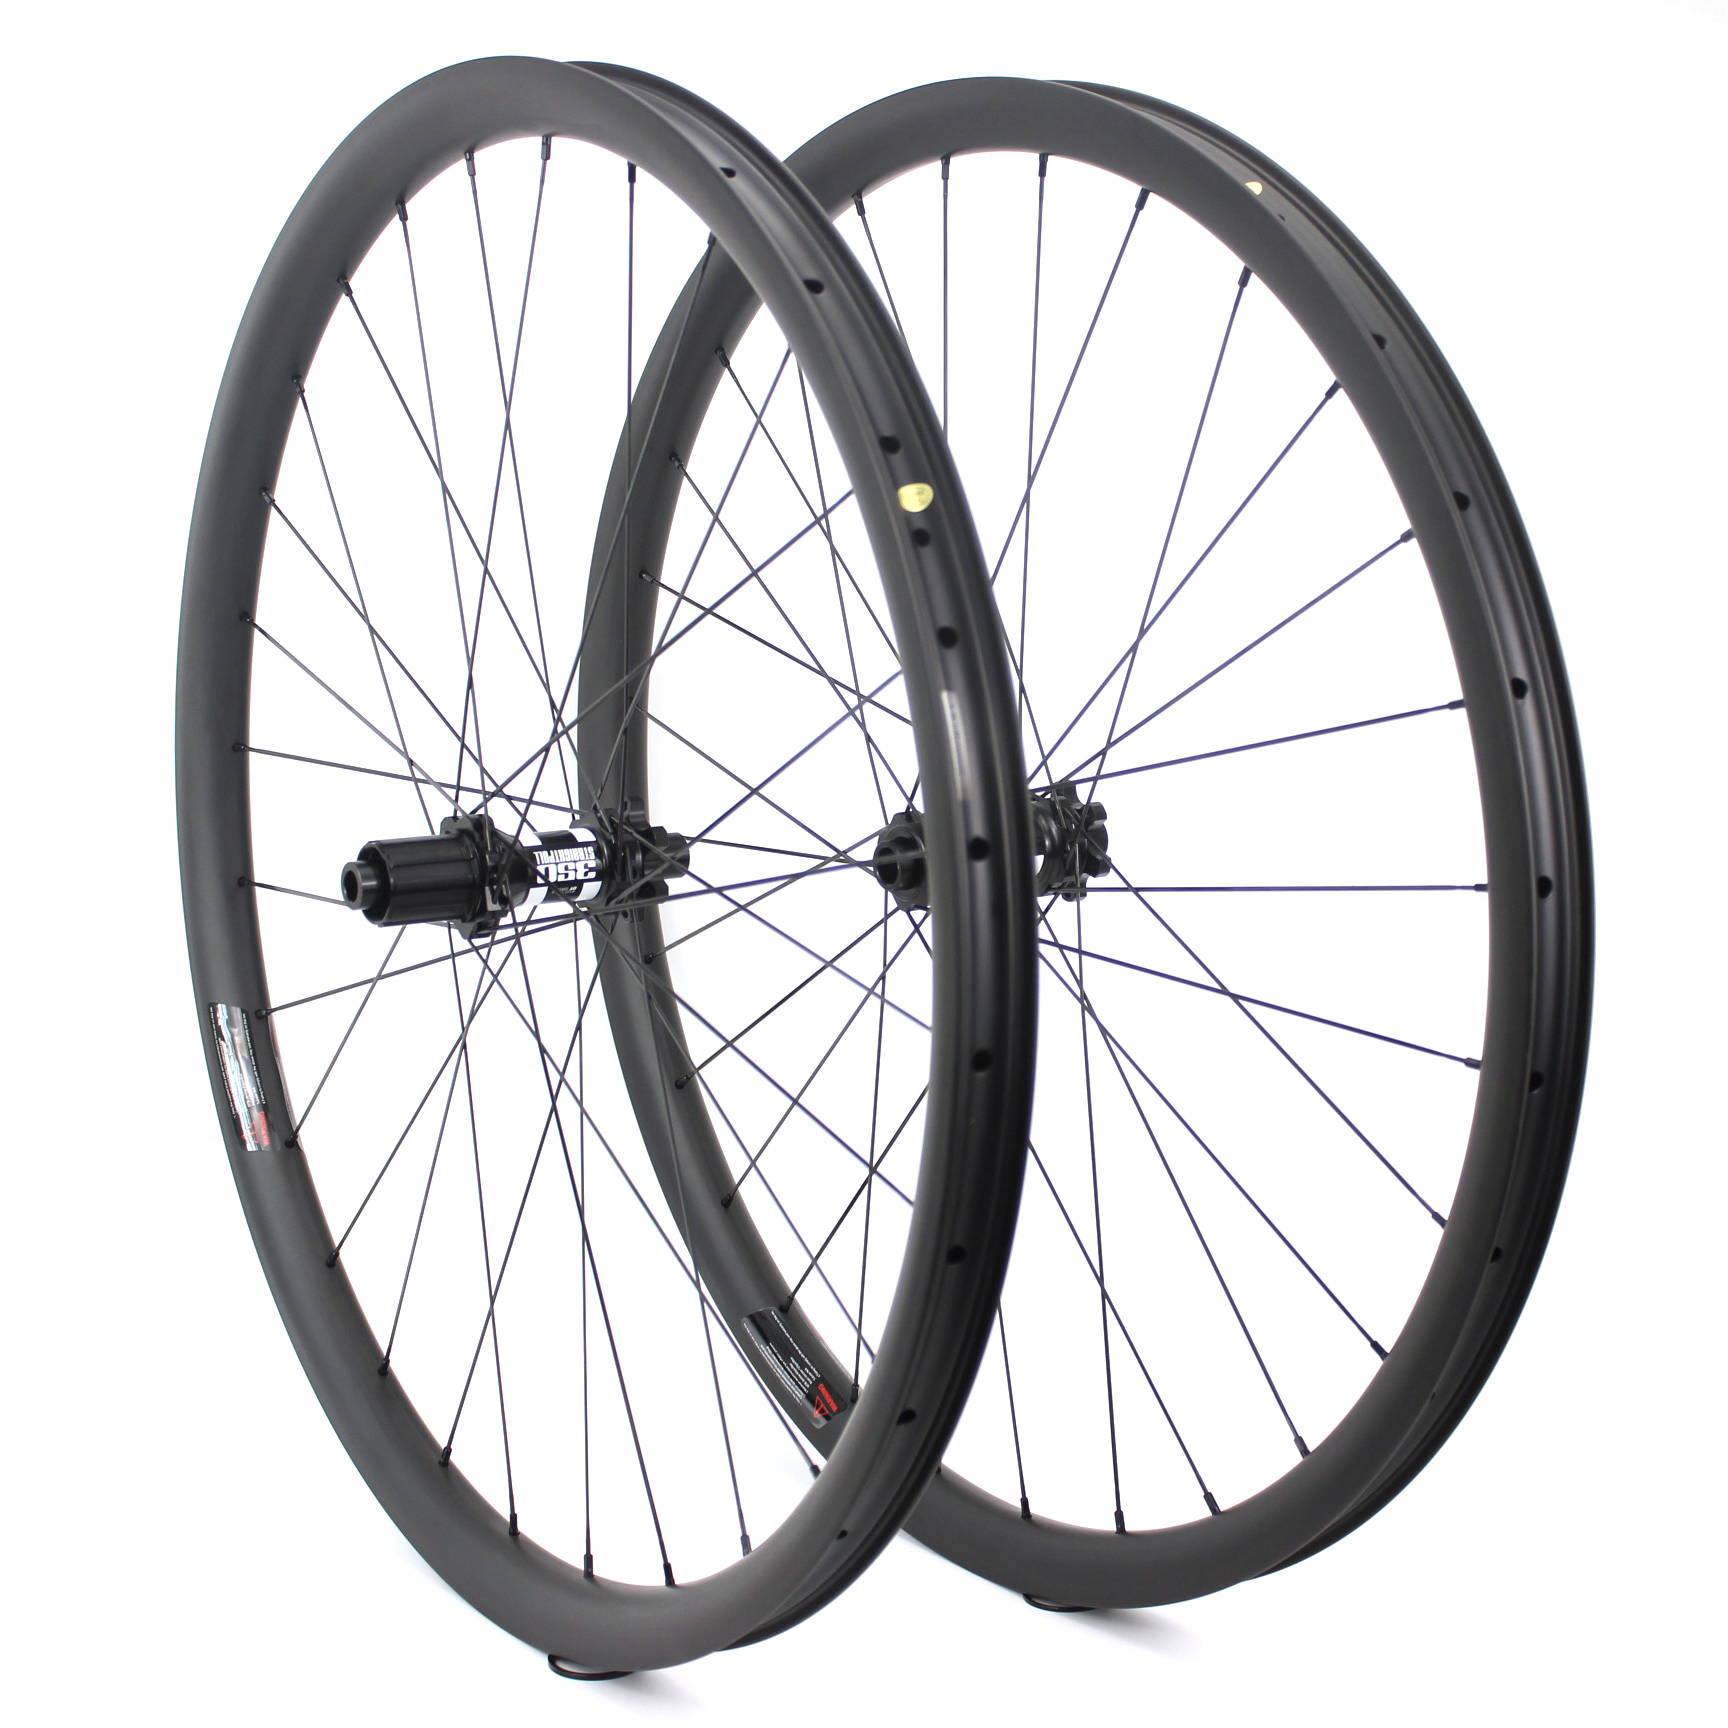 Chinese Carbon MTB Wheels 29er 36mm Width Mountain Bike Carbon Wheels 29 for DT 350s Barrel shaft Hub